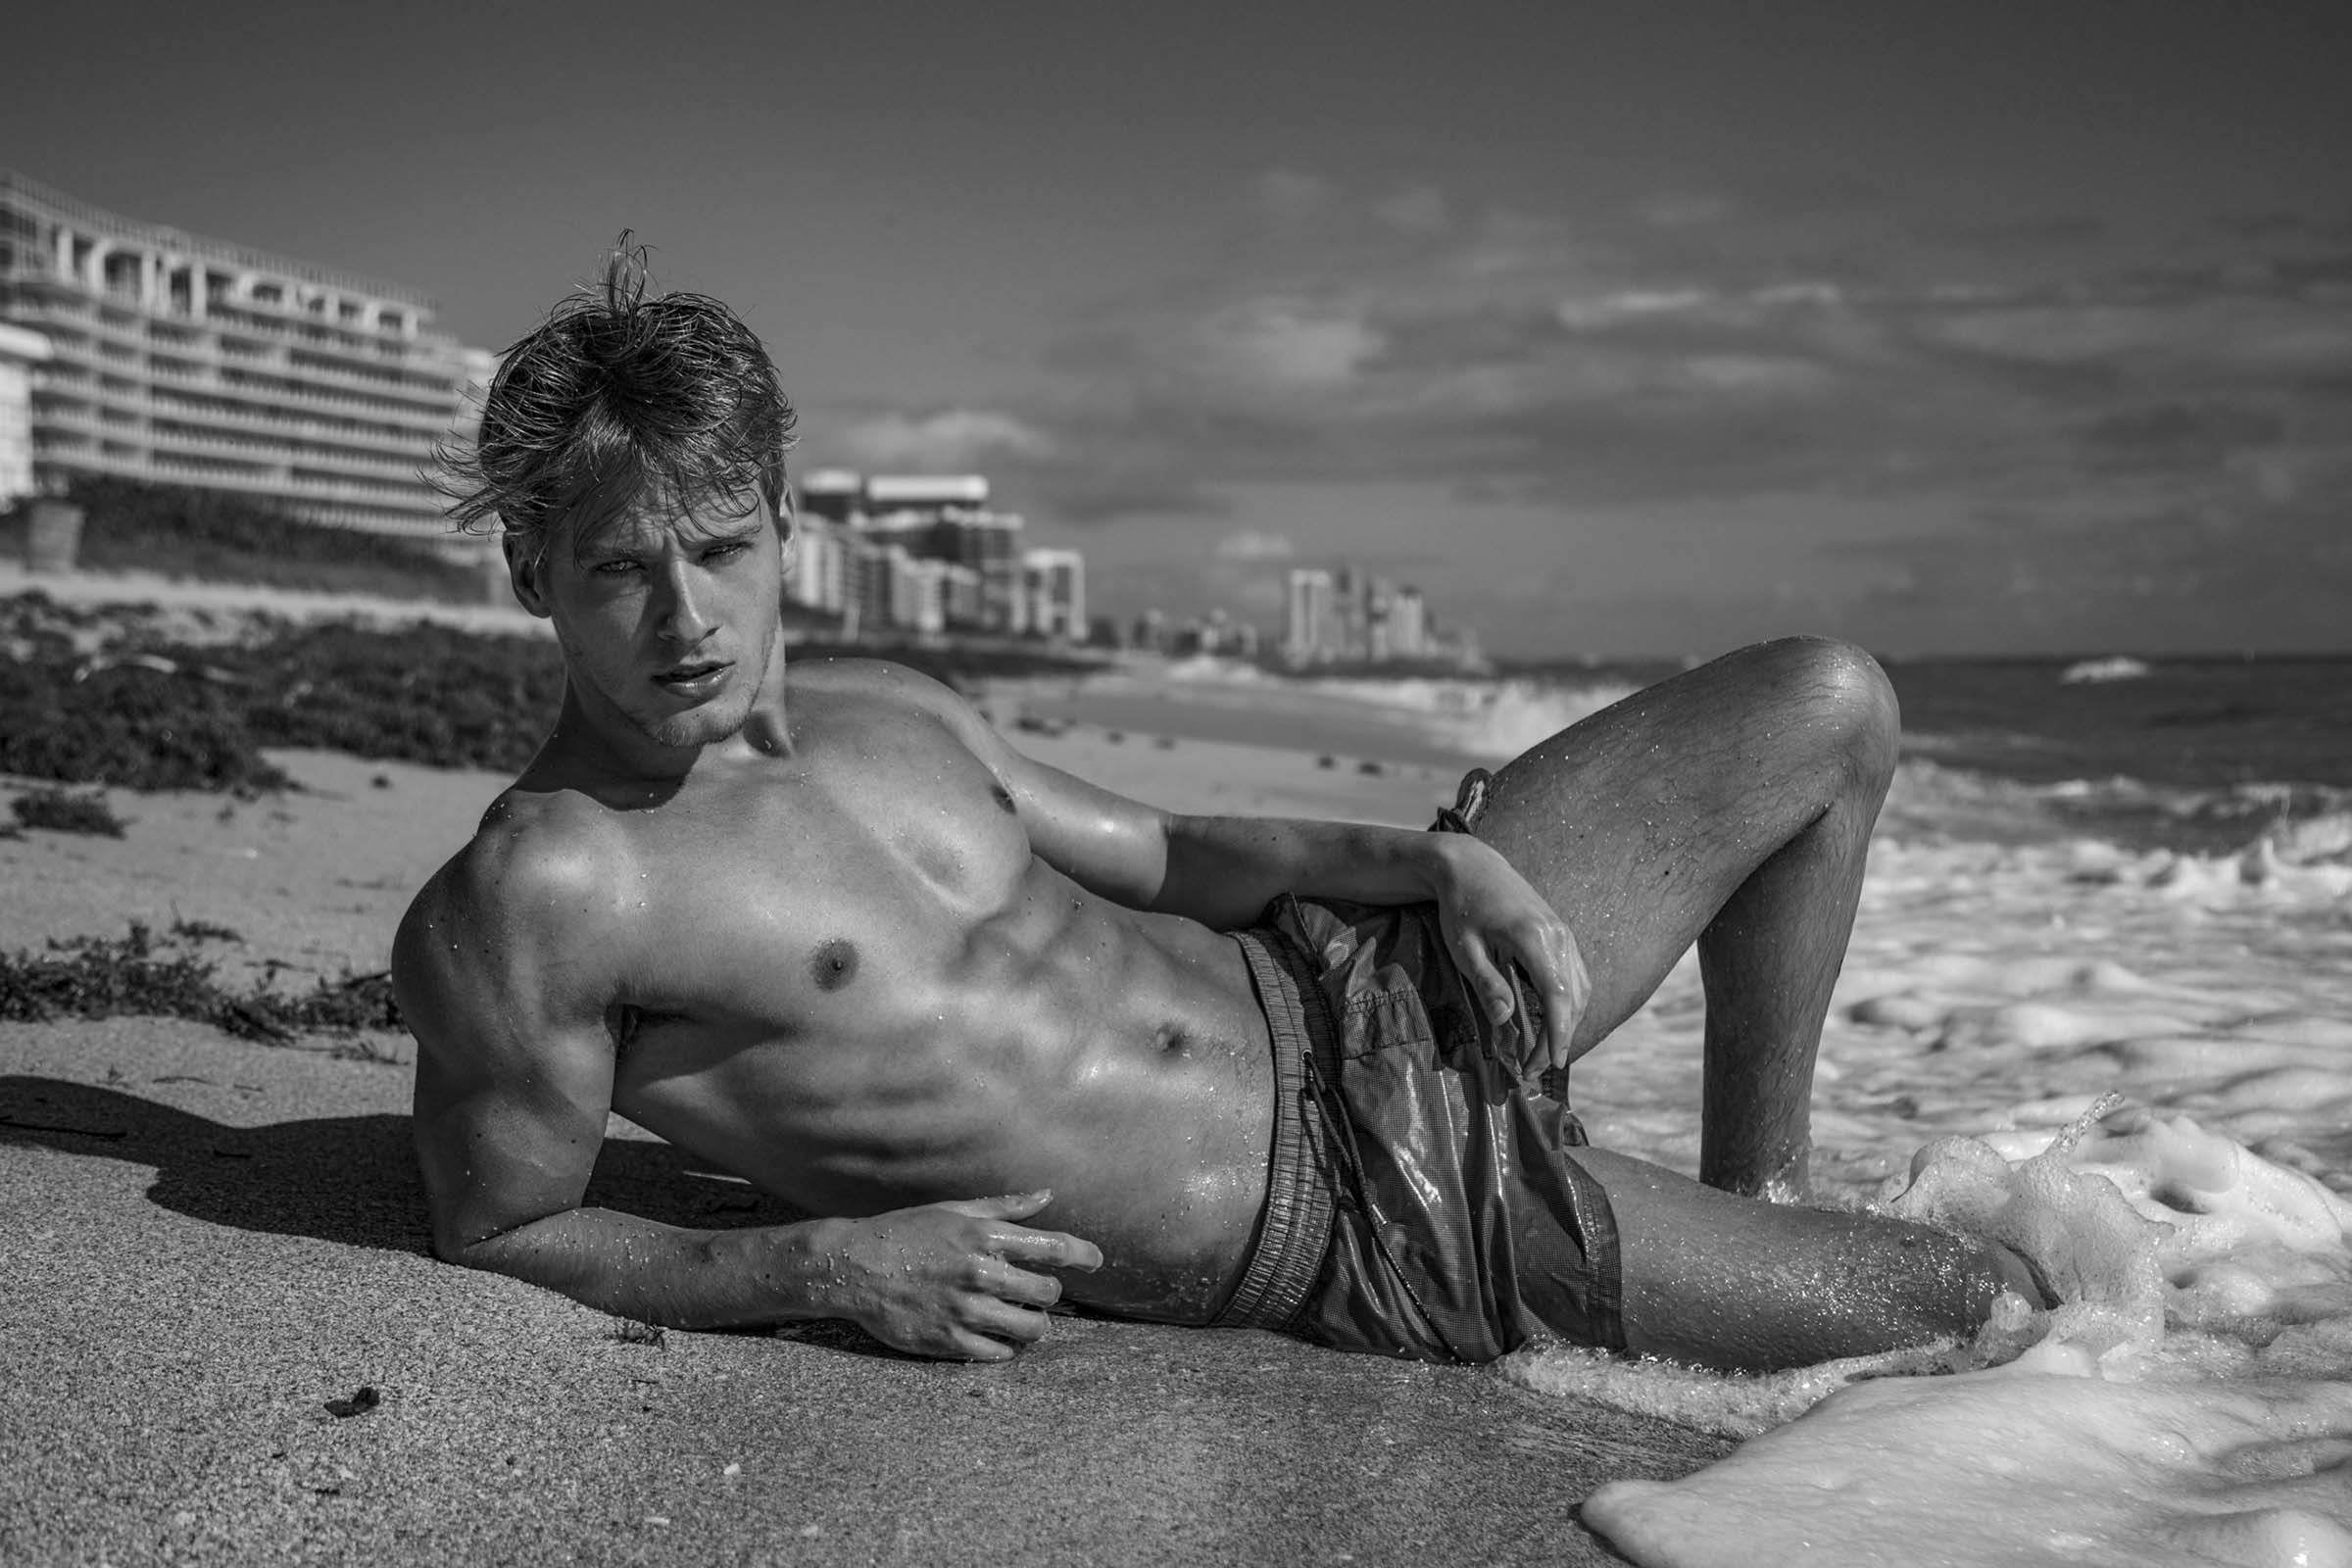 Renan Corbani X Luiz Moreira X Brazilian Male Model X YUP MAGAZINE